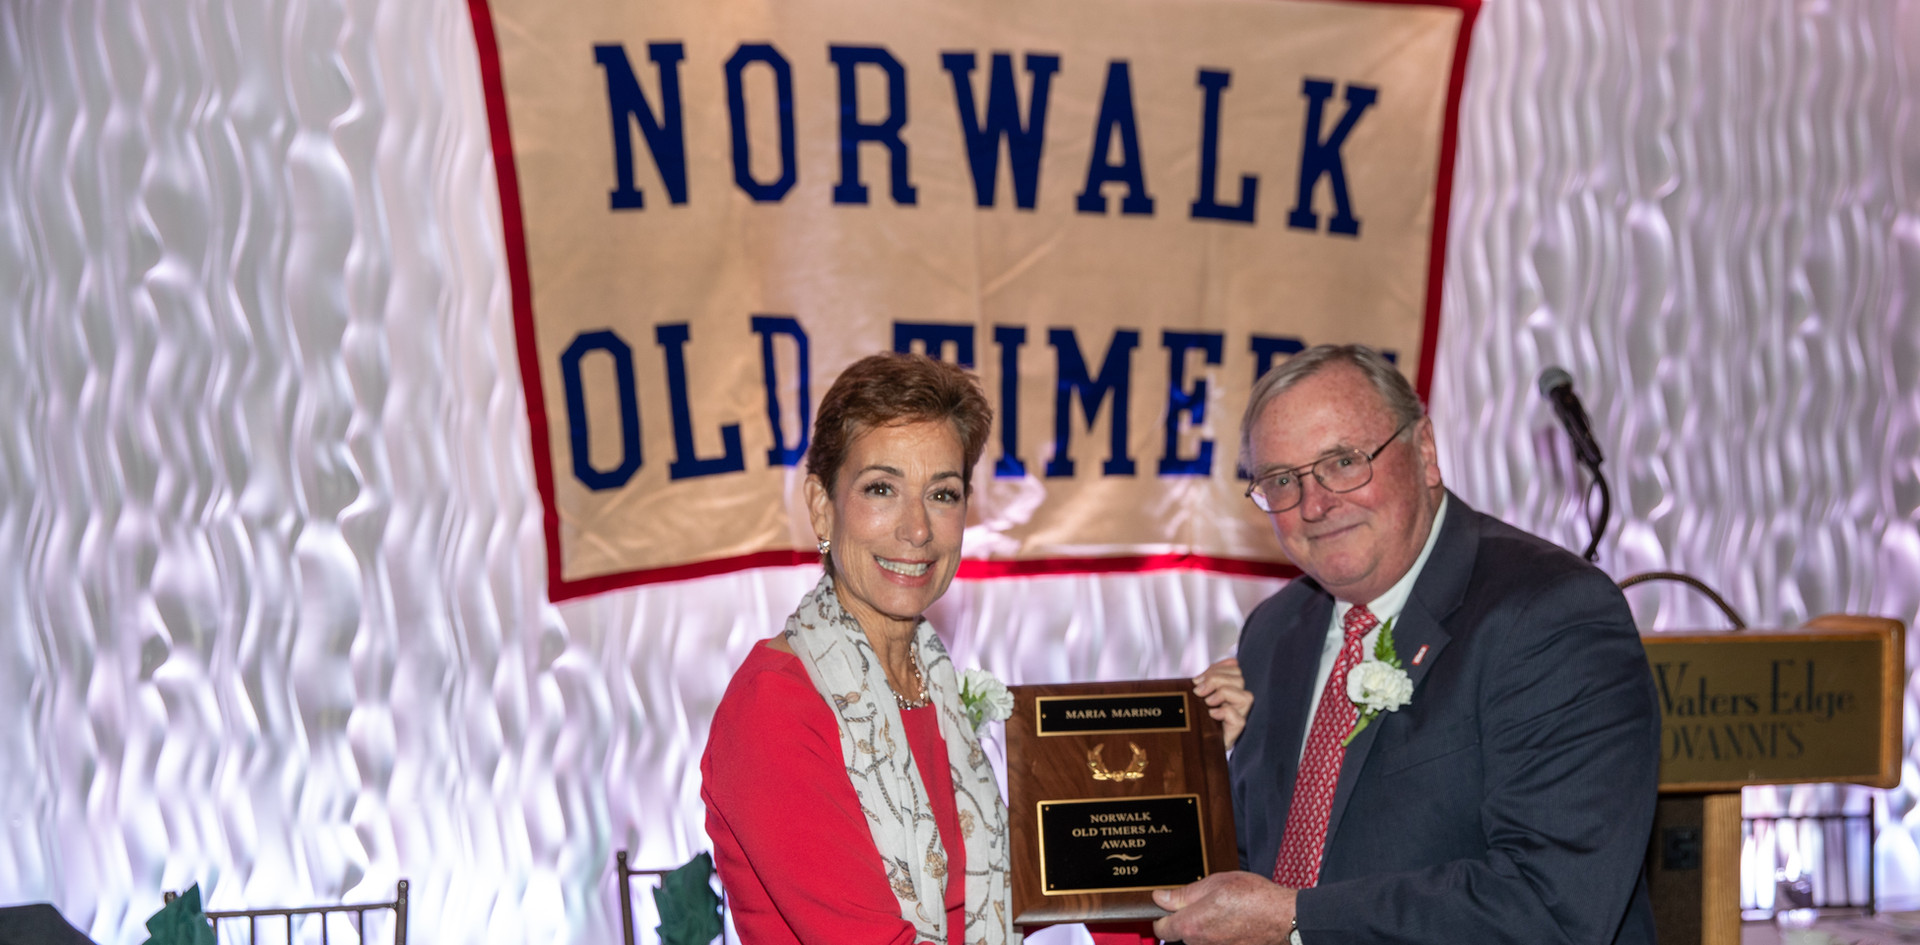 Maria Marino receives her award-commemorating plaque from Norwalk Old Timers Association president Jack Couch.  (photo by Josh Molaver)